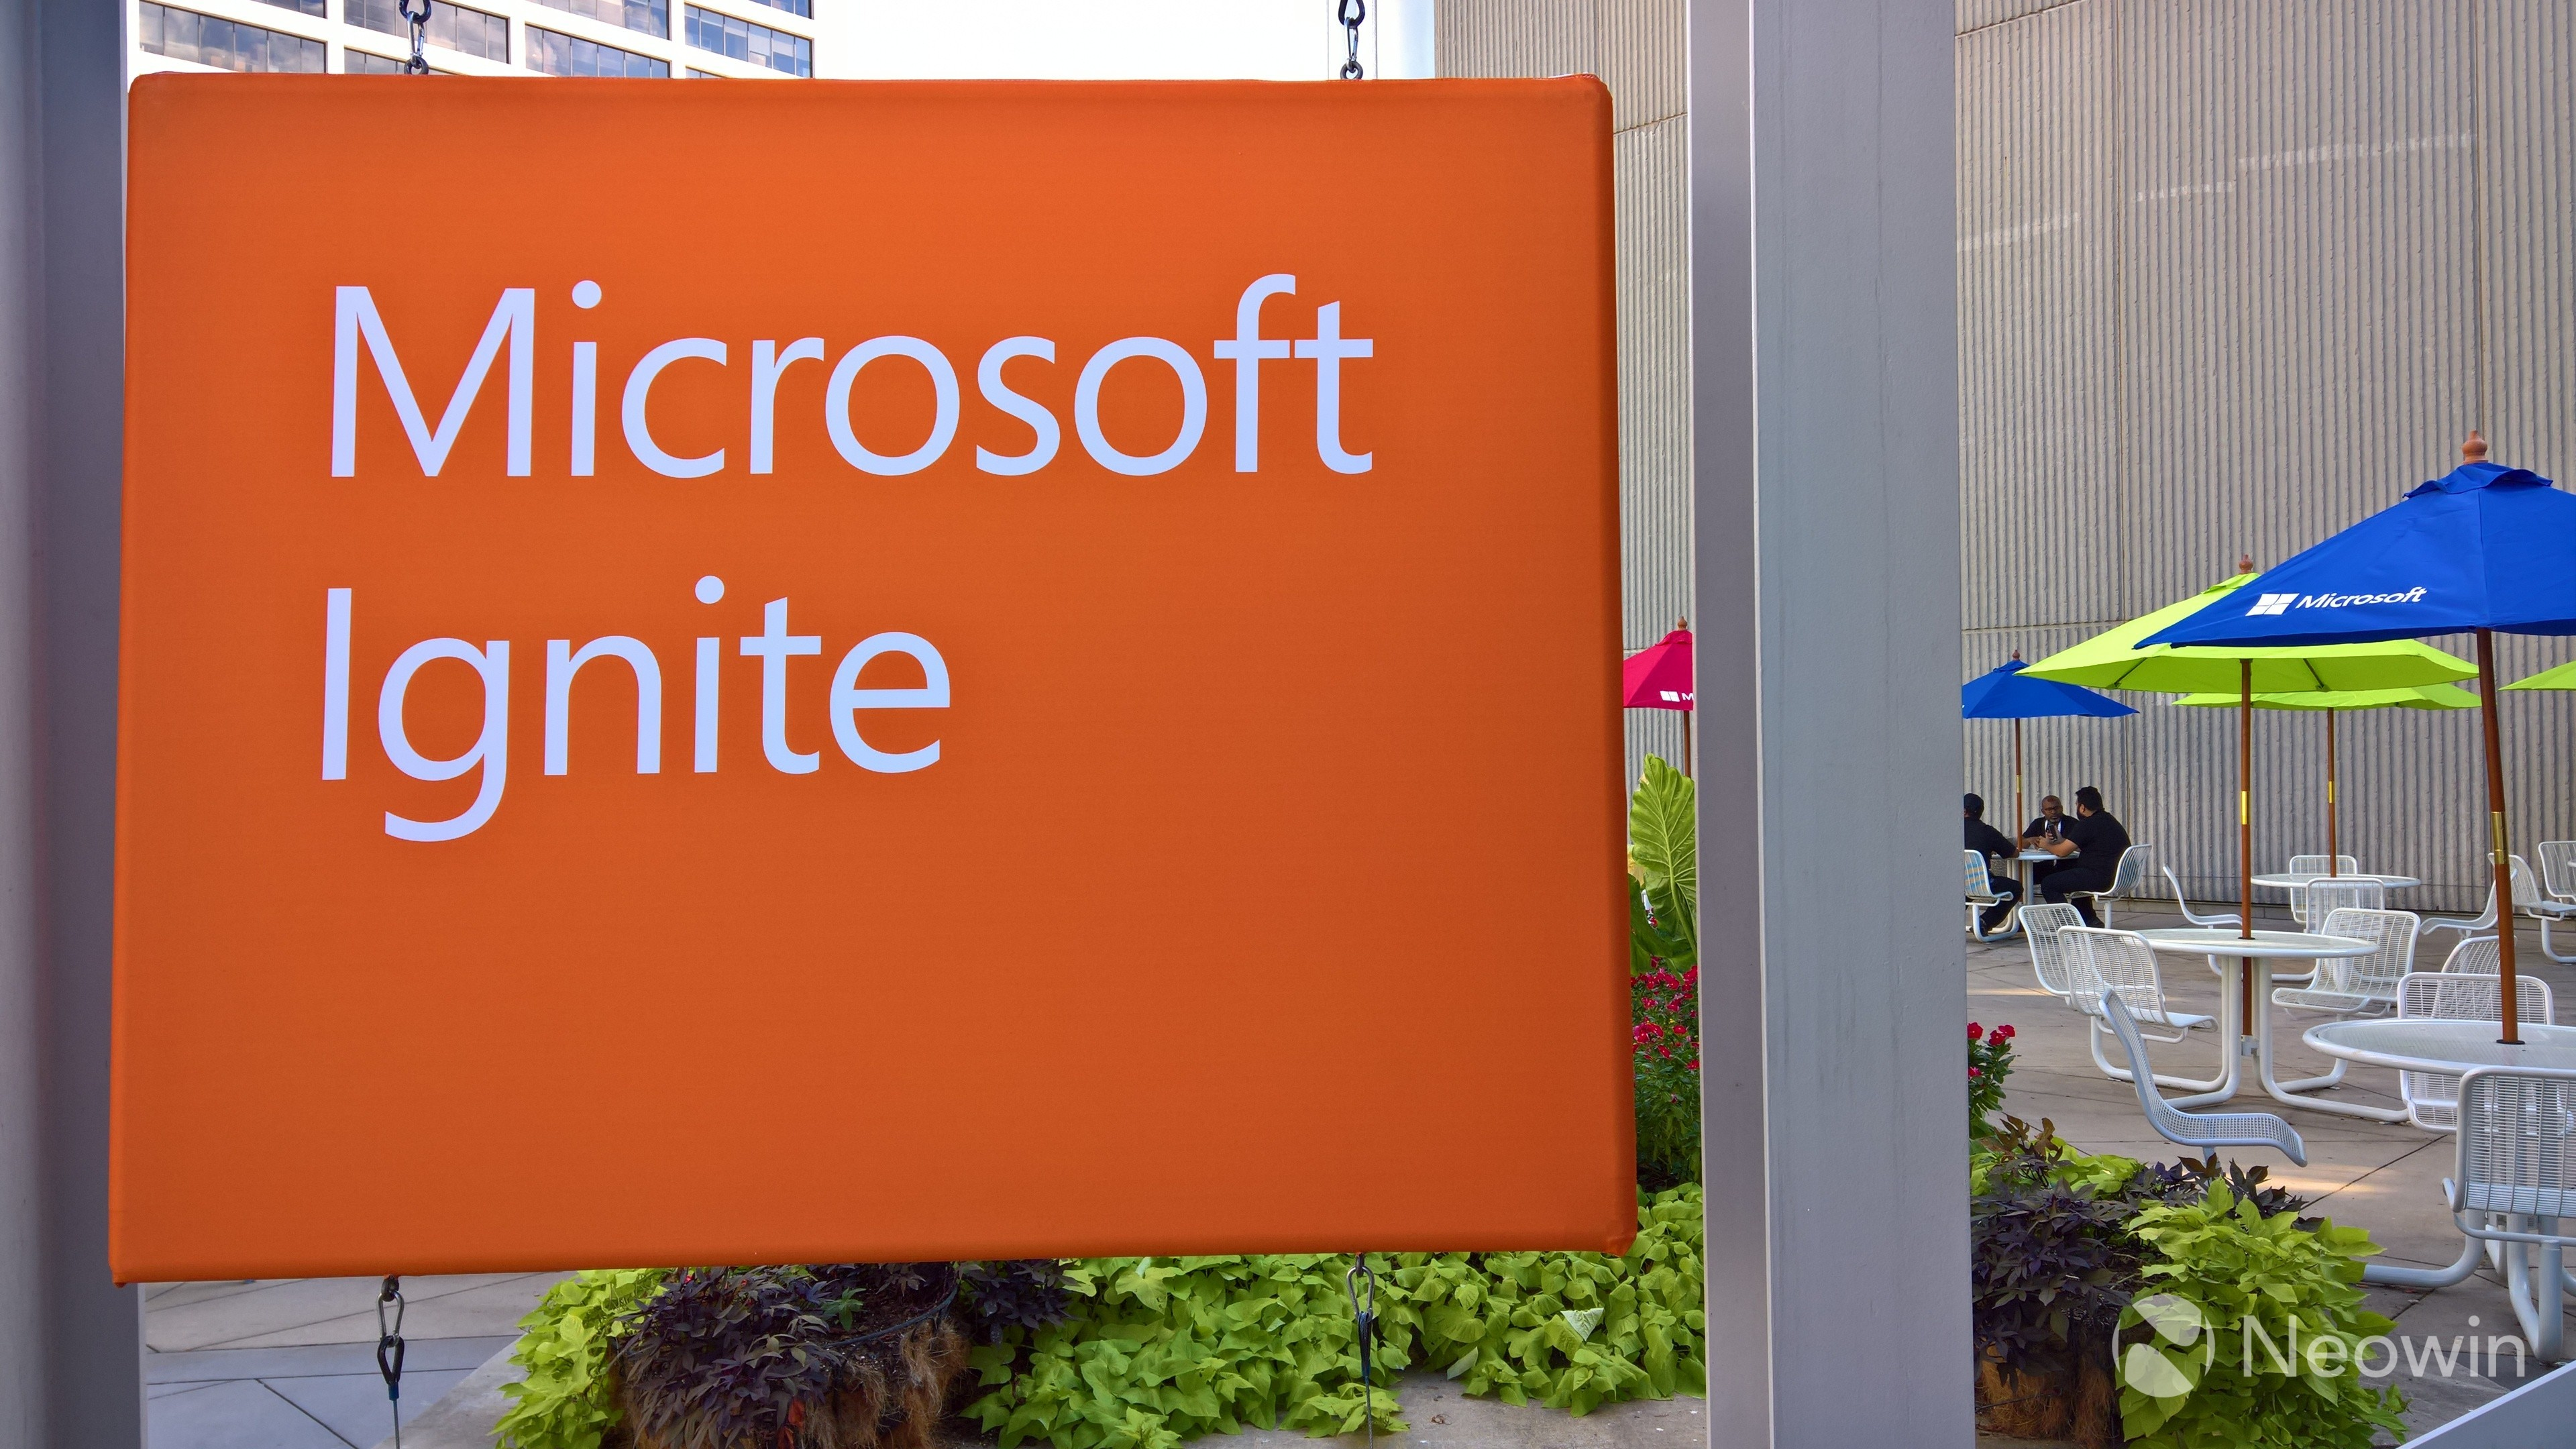 Microsoft unveils innovative new operating system at Ignite 2016